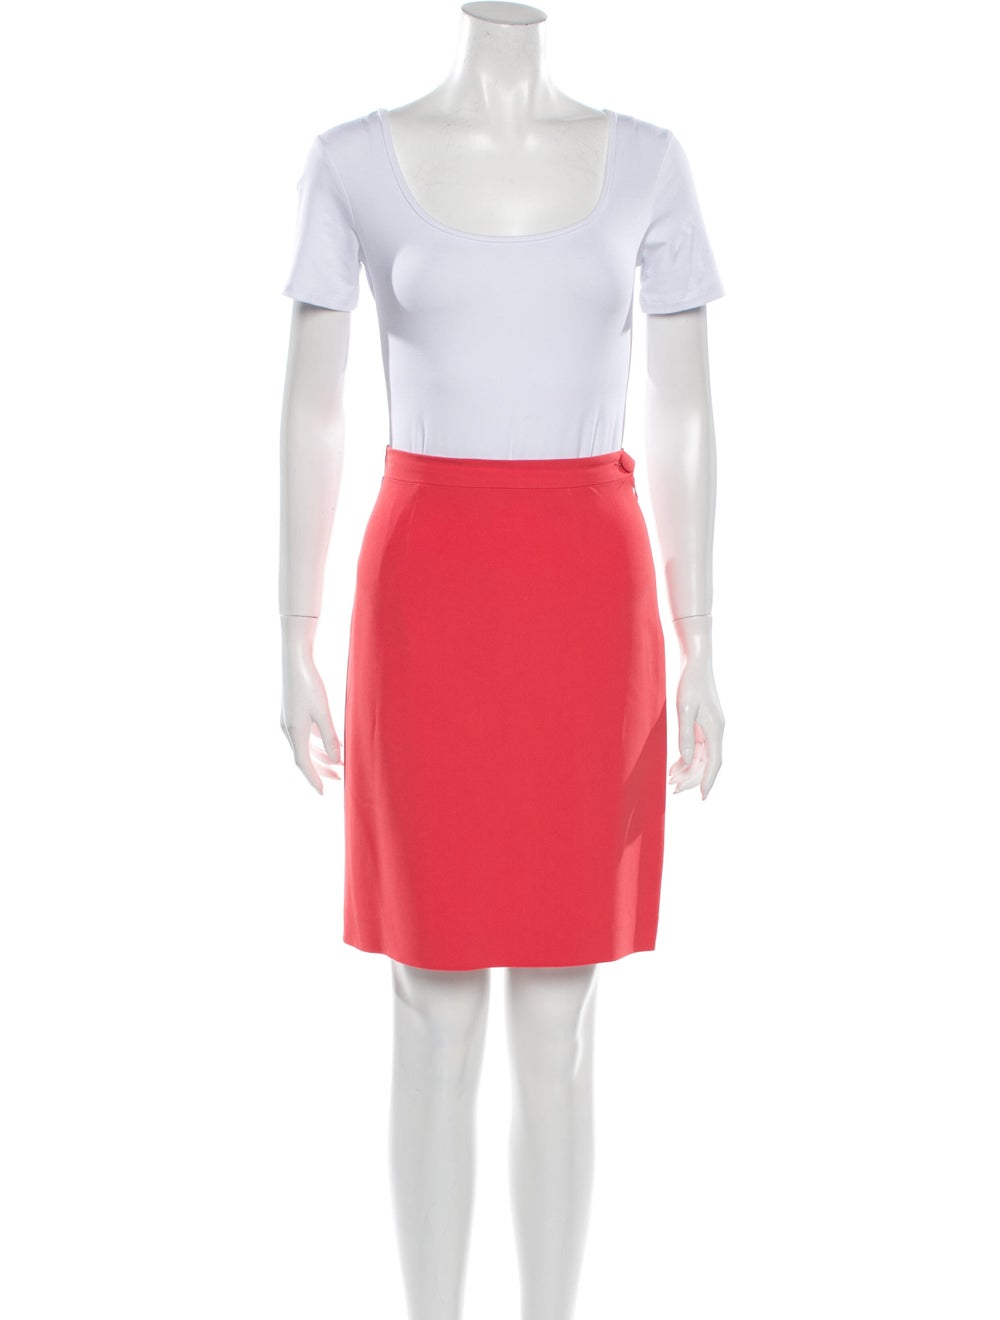 Moschino Skirt Suit Pink - image 4